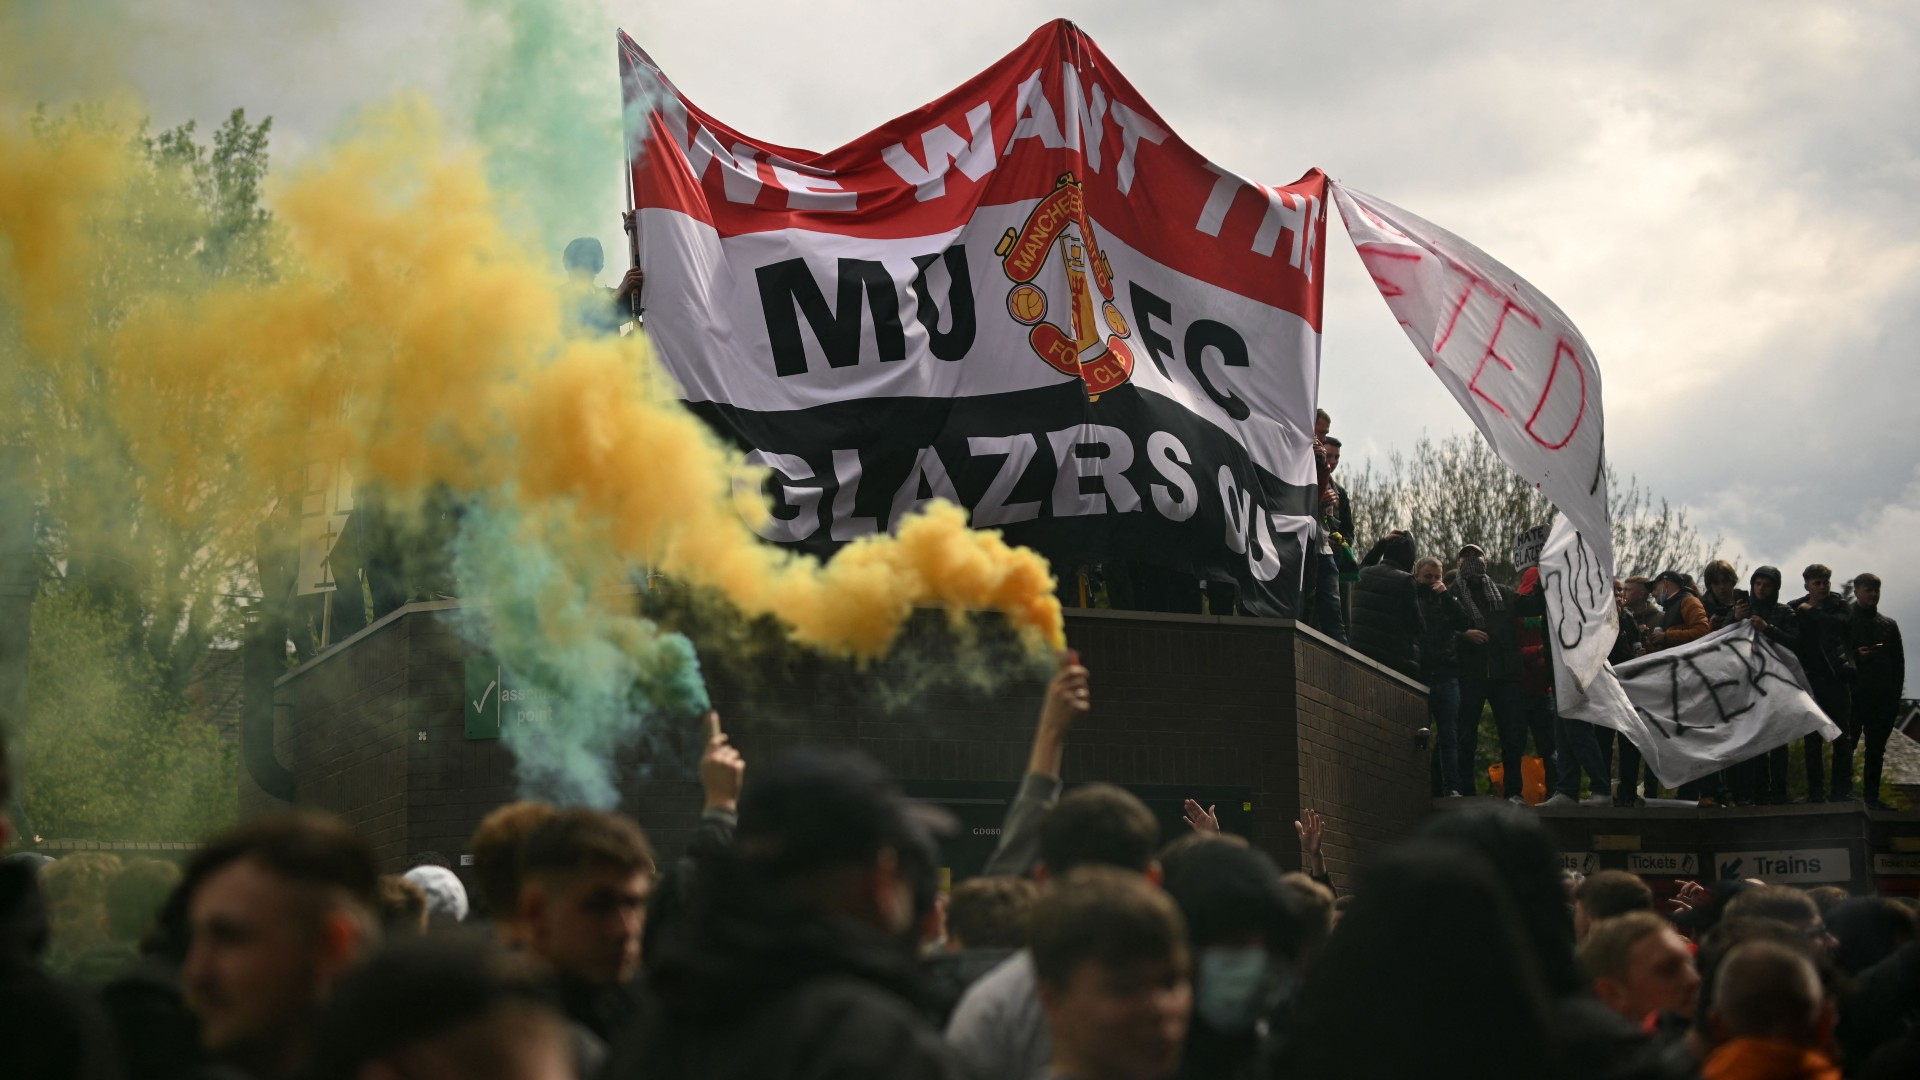 Manchester United protests are victory for fan power despite Liverpool postponement